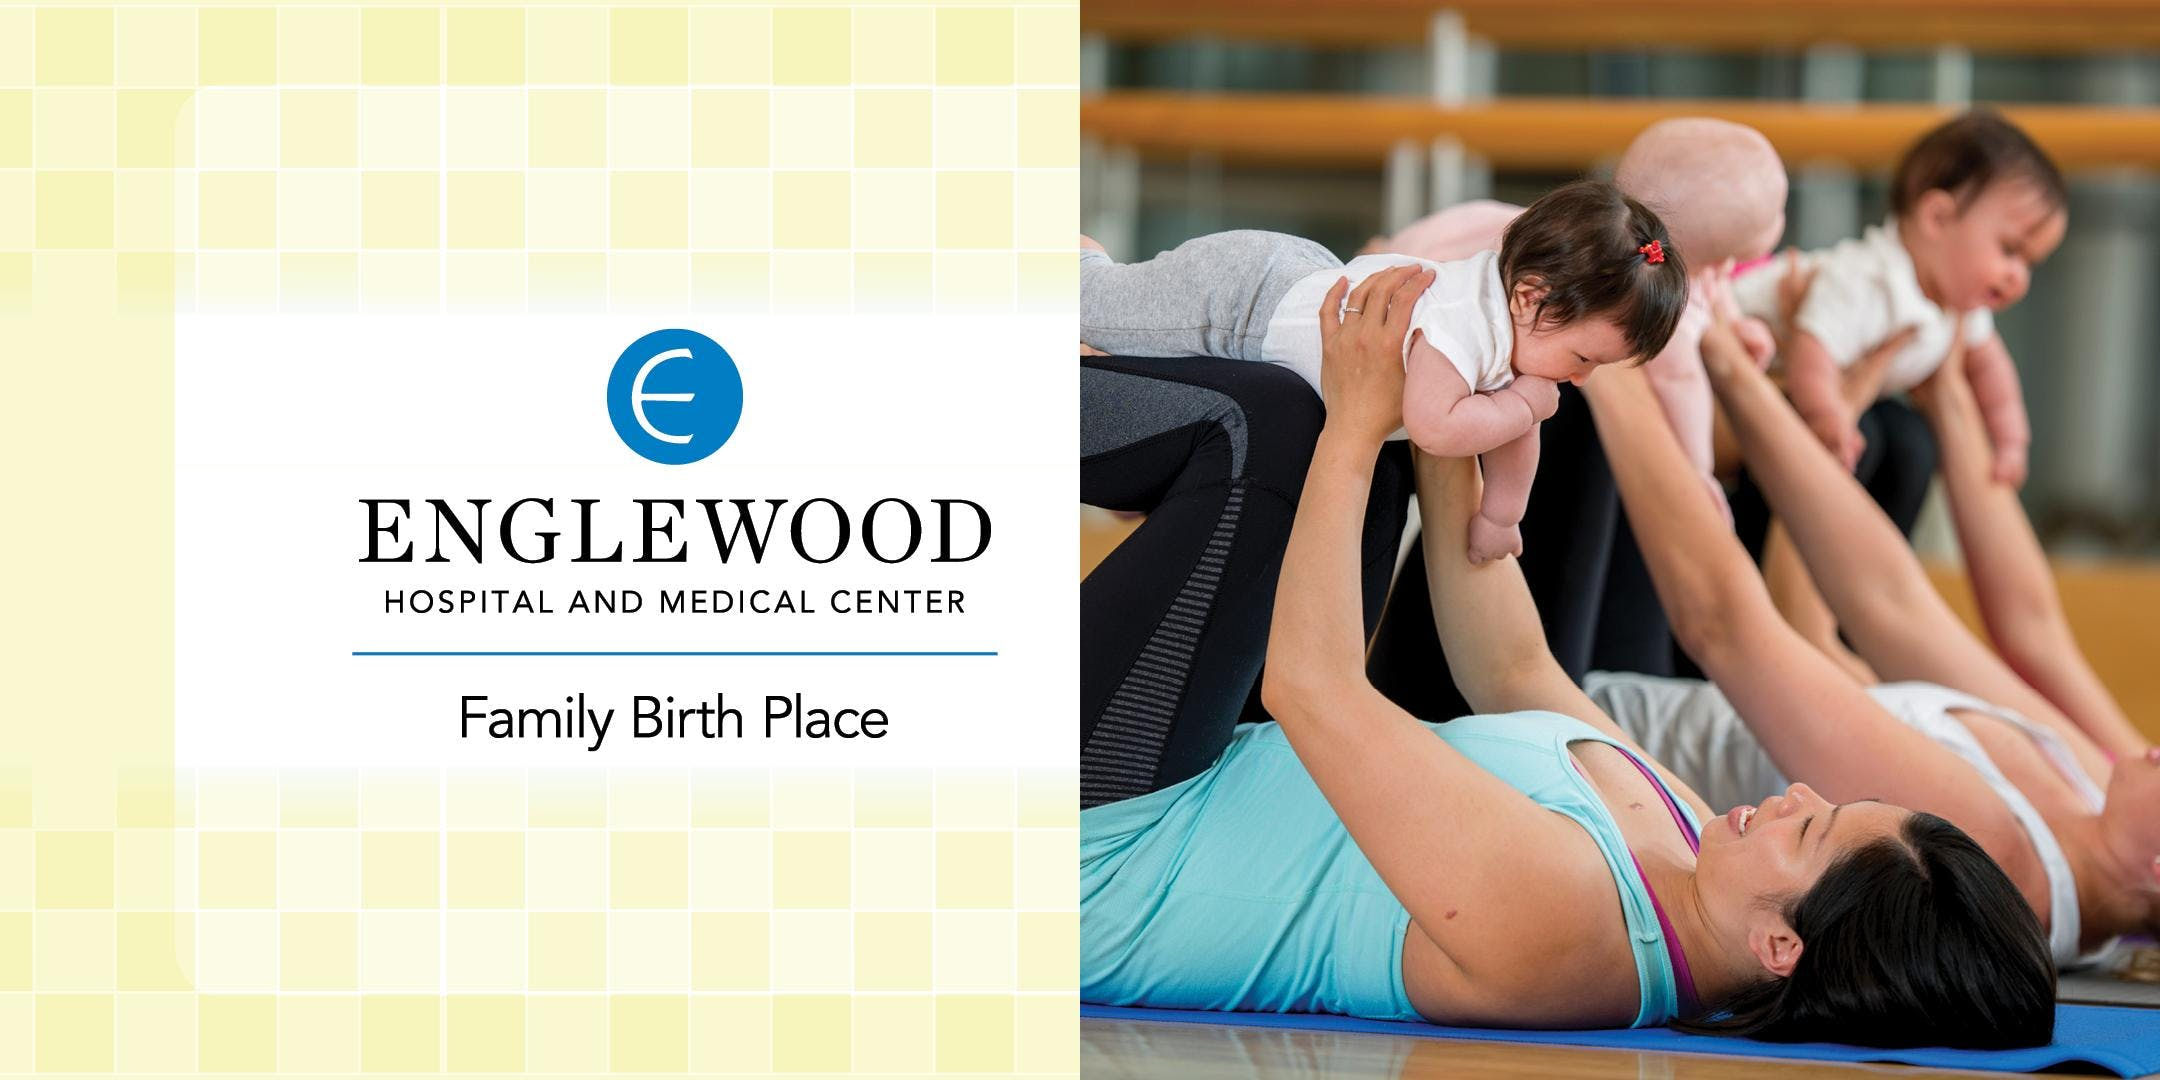 More info: Mommy and Me Postnatal Yoga Series (JUNE 14-JULY 19)